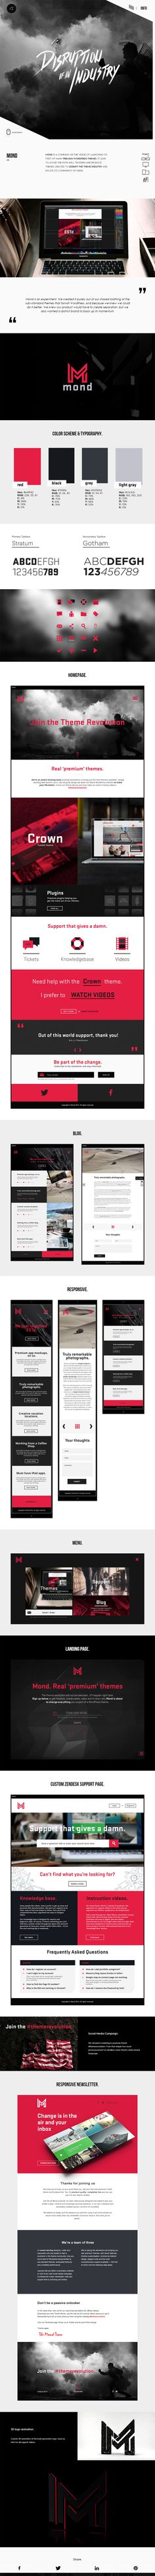 Awesome case study layout including UI style guide http://engzell.me/